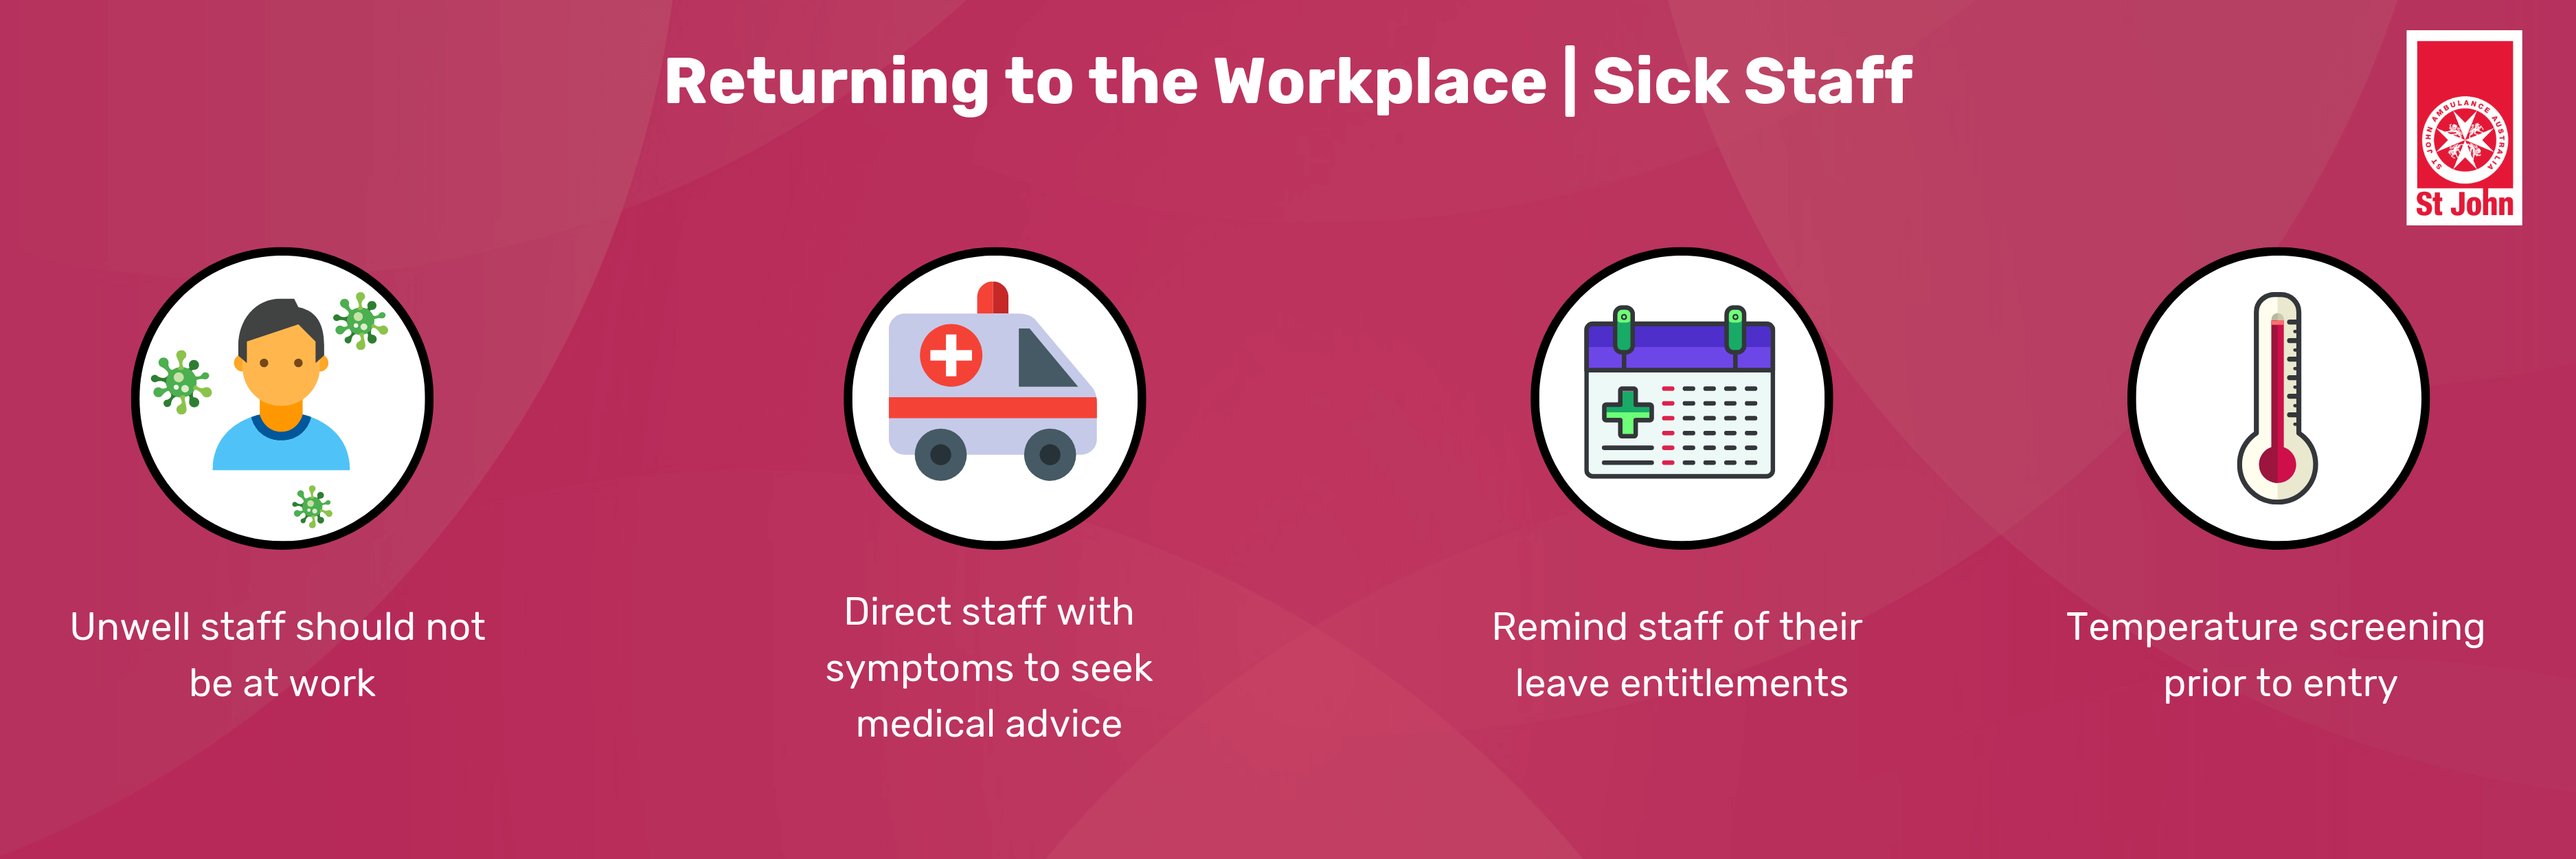 Returning to the Workplace During COVID-19 Sick or Unwell Staff Practices